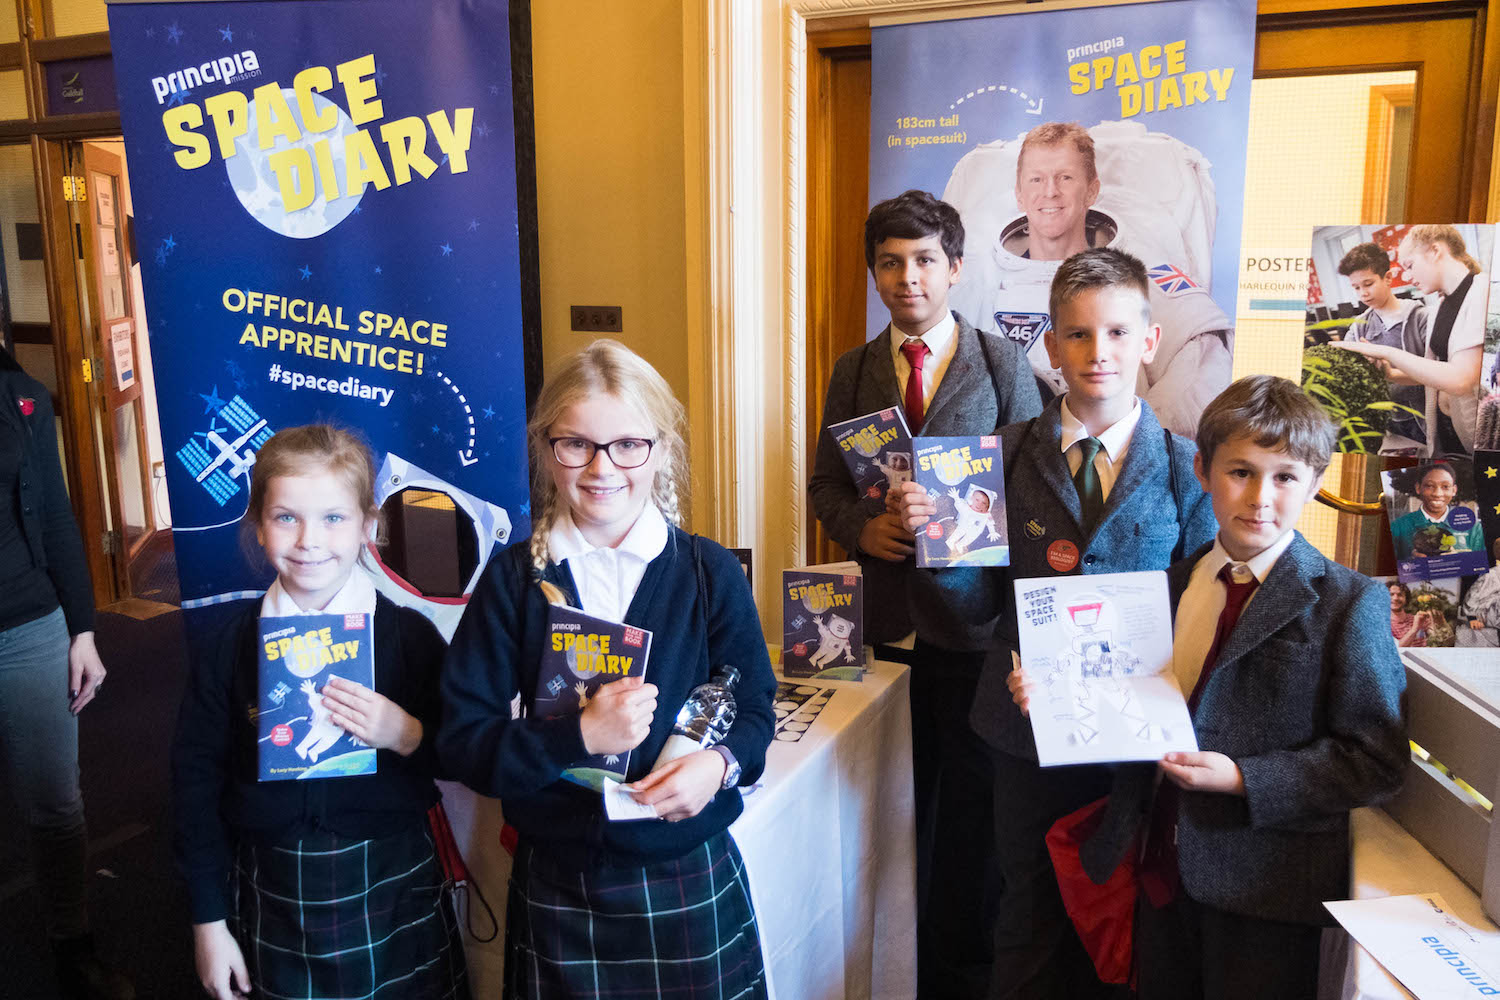 Four british school students hold their tim peake space diaries